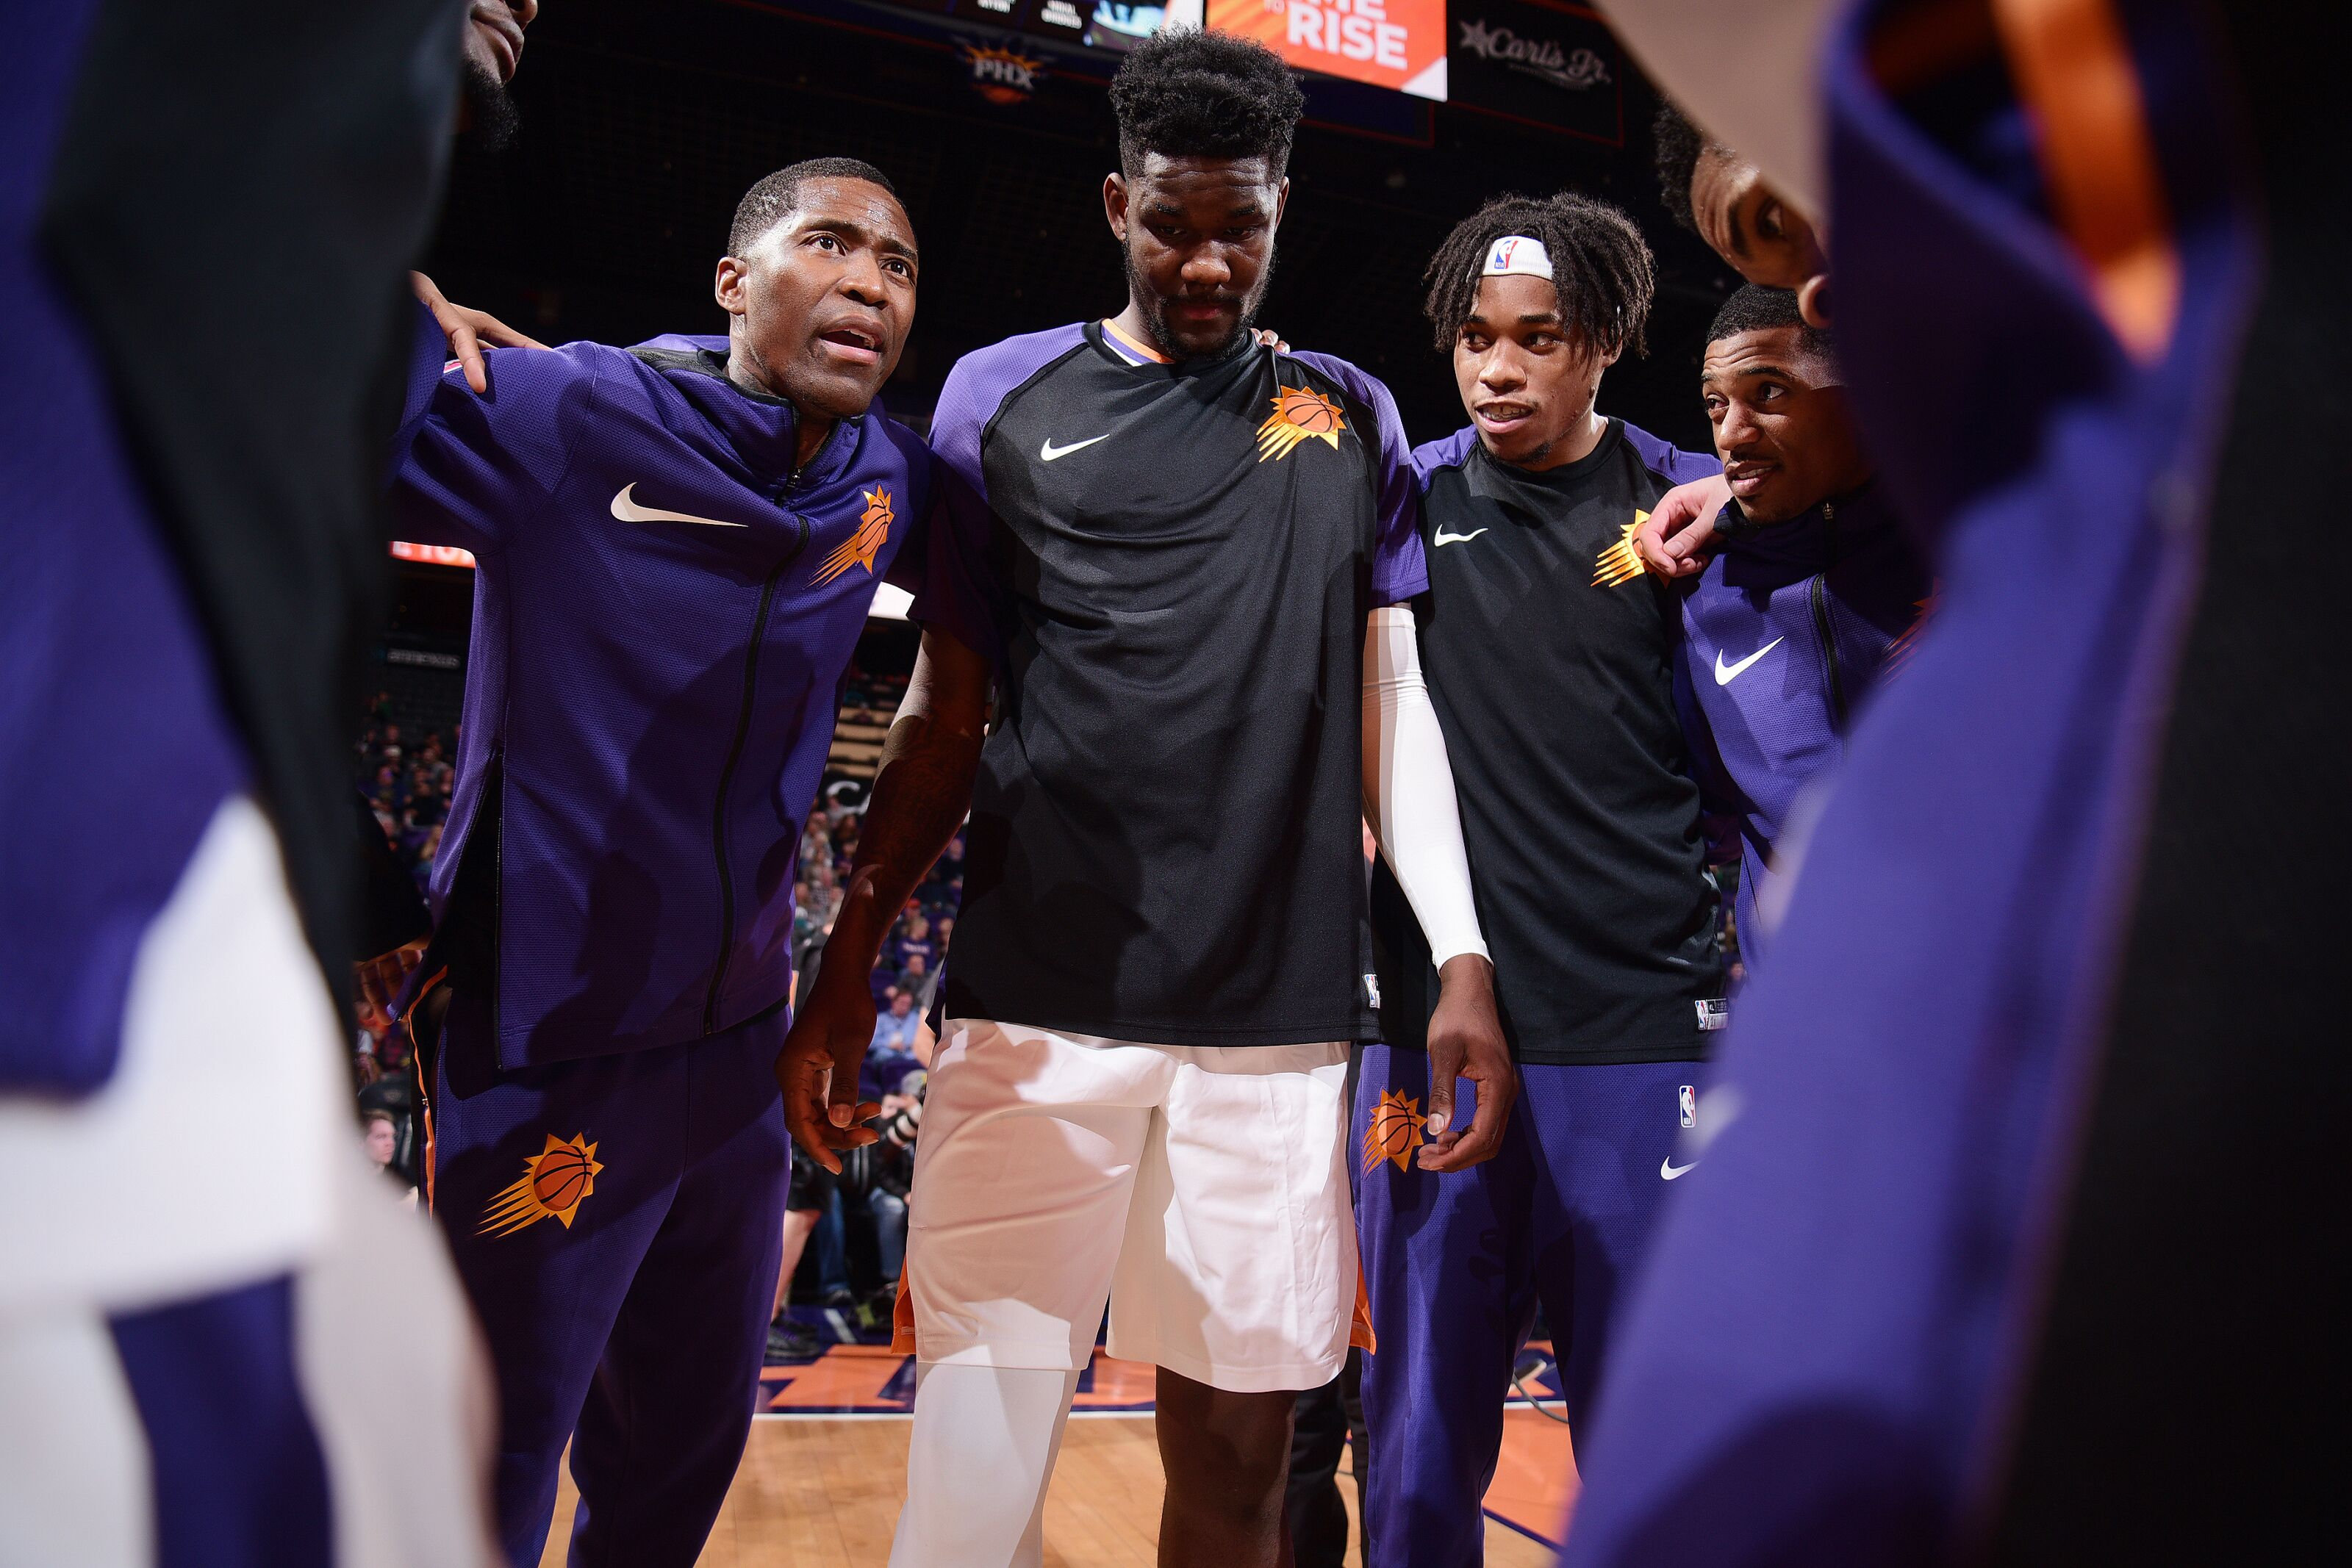 Phoenix Suns disappointing start should not be a surprise